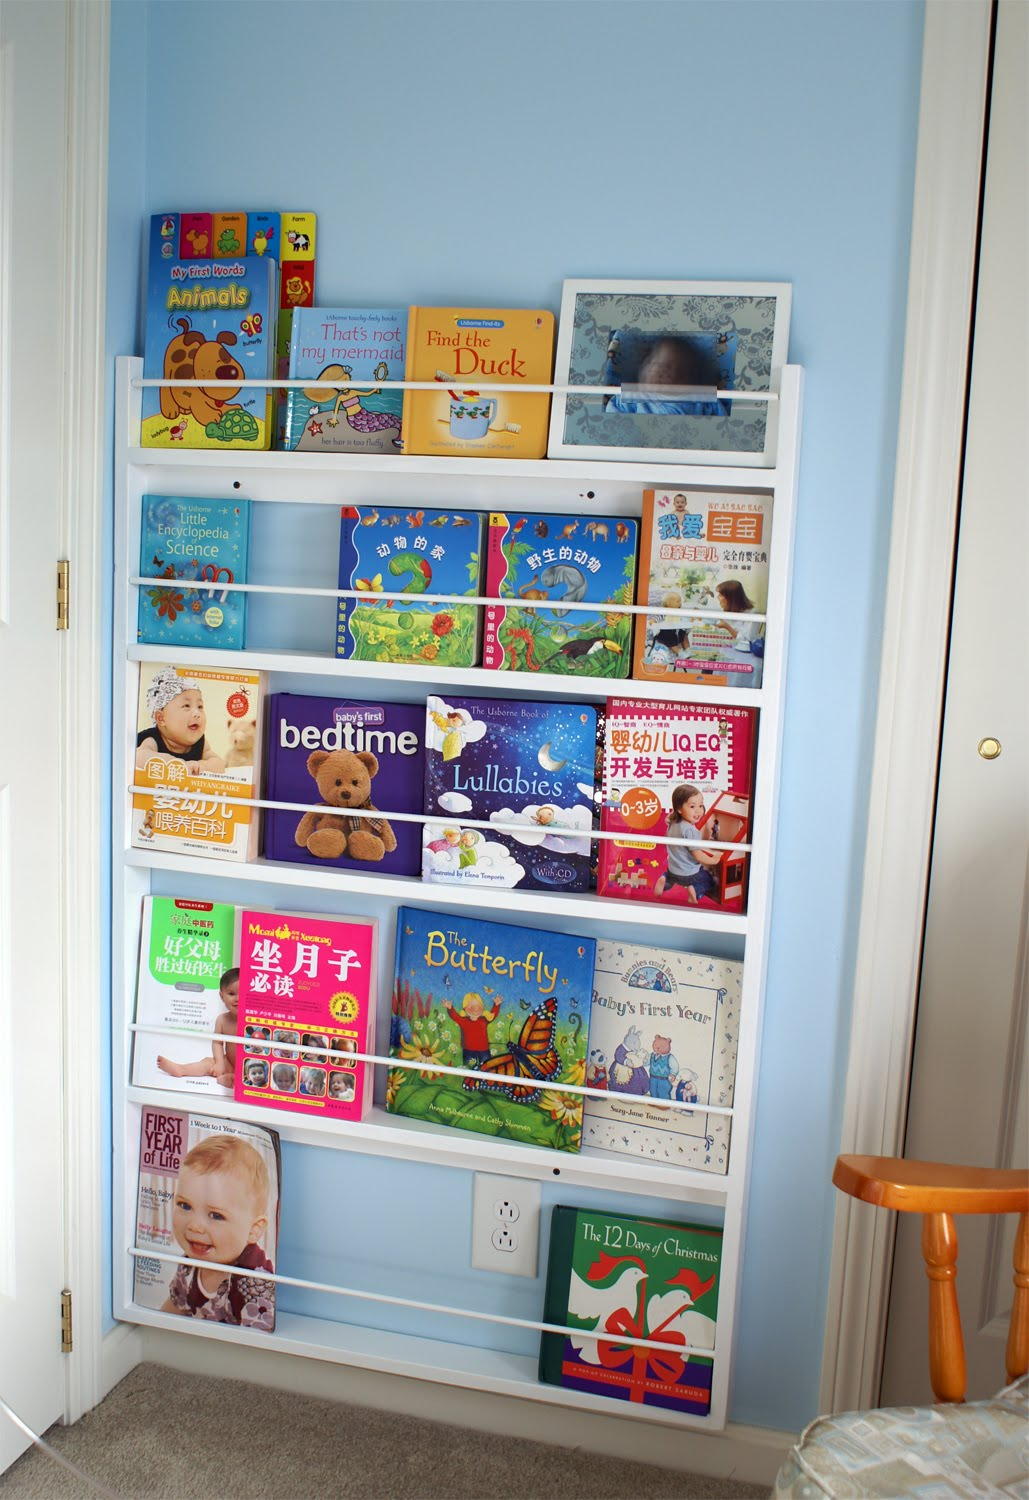 A Shallow Bookshelf To Custom Fit The Narrow Space Behind Door My Mom Painted It White Match Those Floating Shelves I Made Earlier